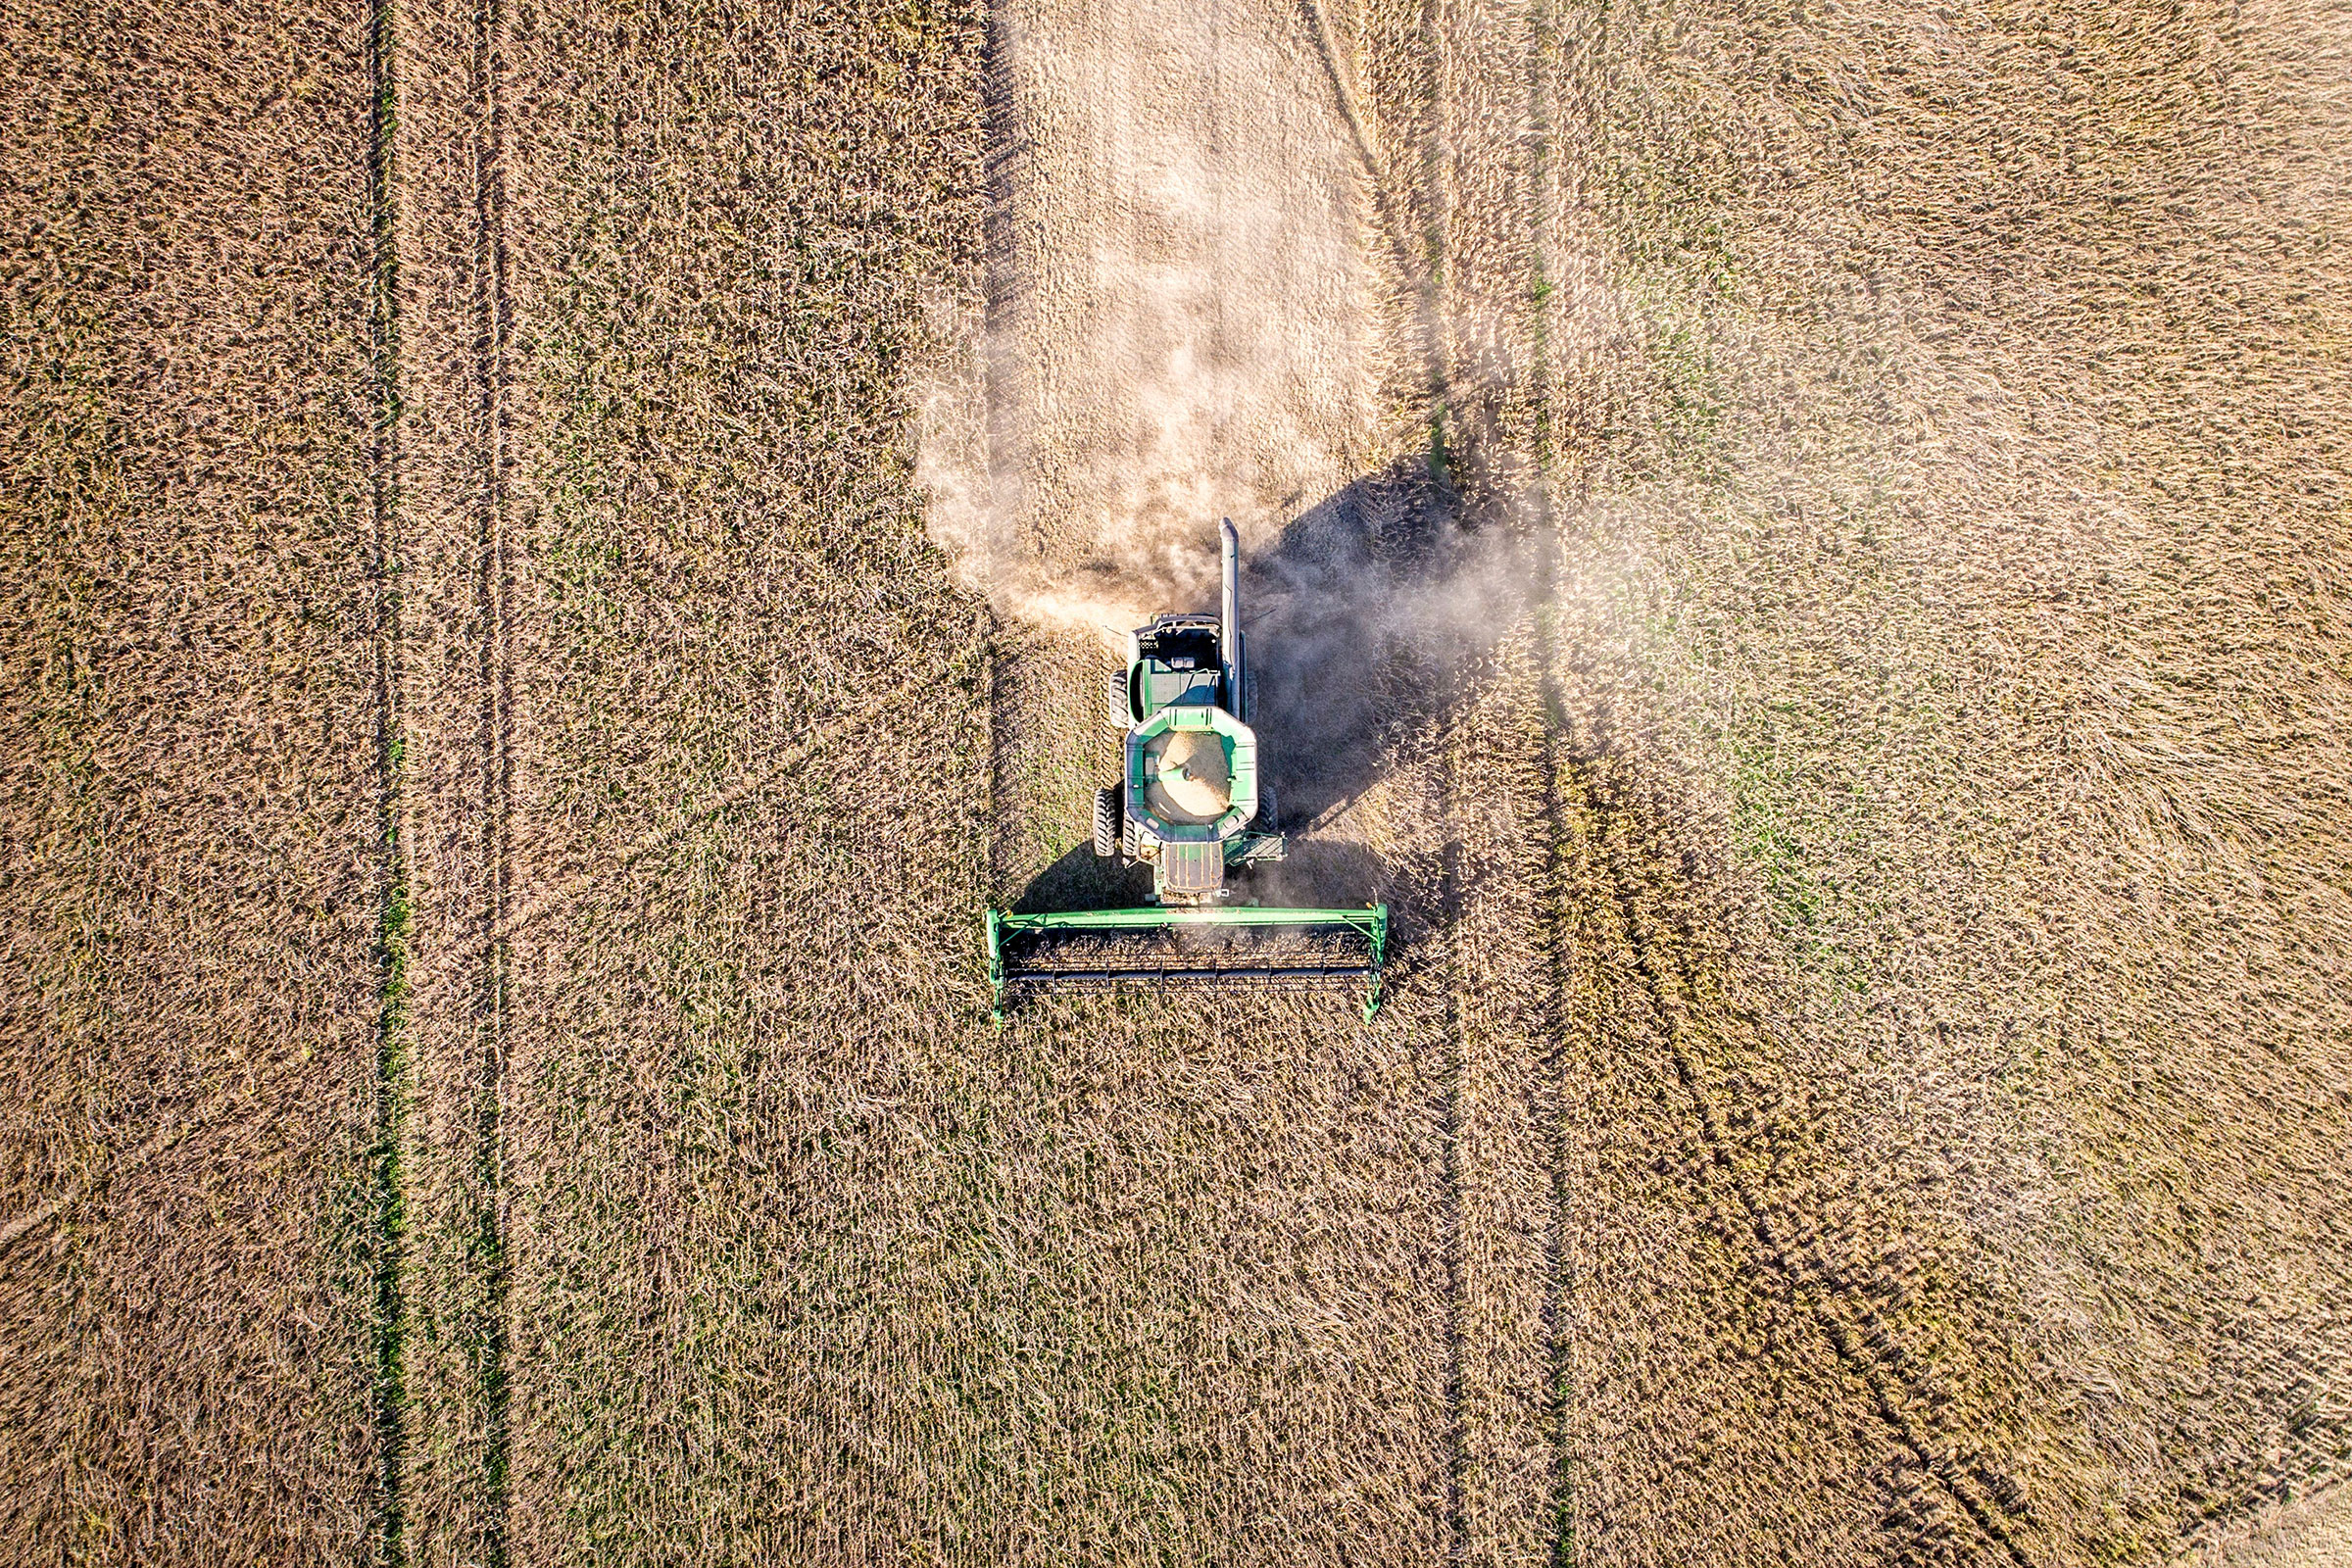 Soybean farms, like this one in Maryland, have been caught up in the U.S.-China trade war